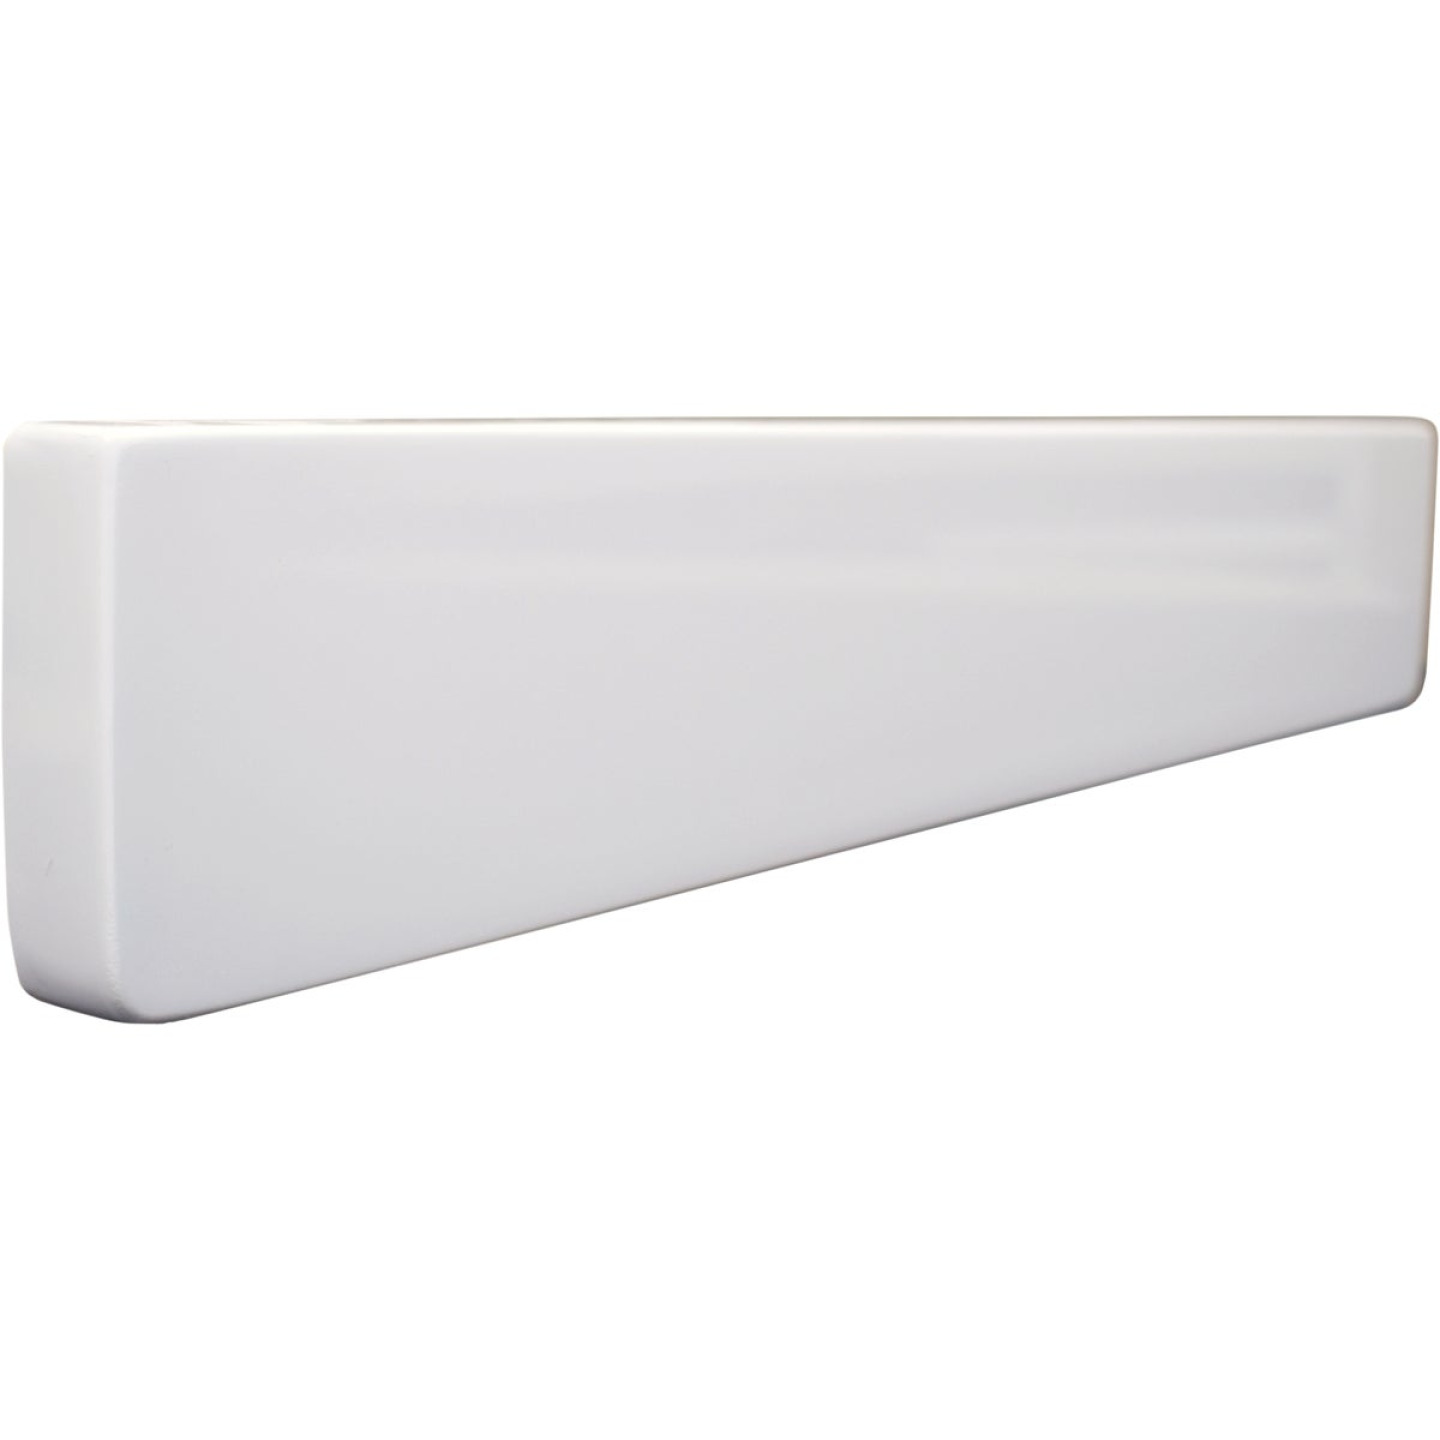 Modular Vanity Tops 4 In. H x 22 In. L Solid White Cultured Marble Side Splash, Universal Image 1